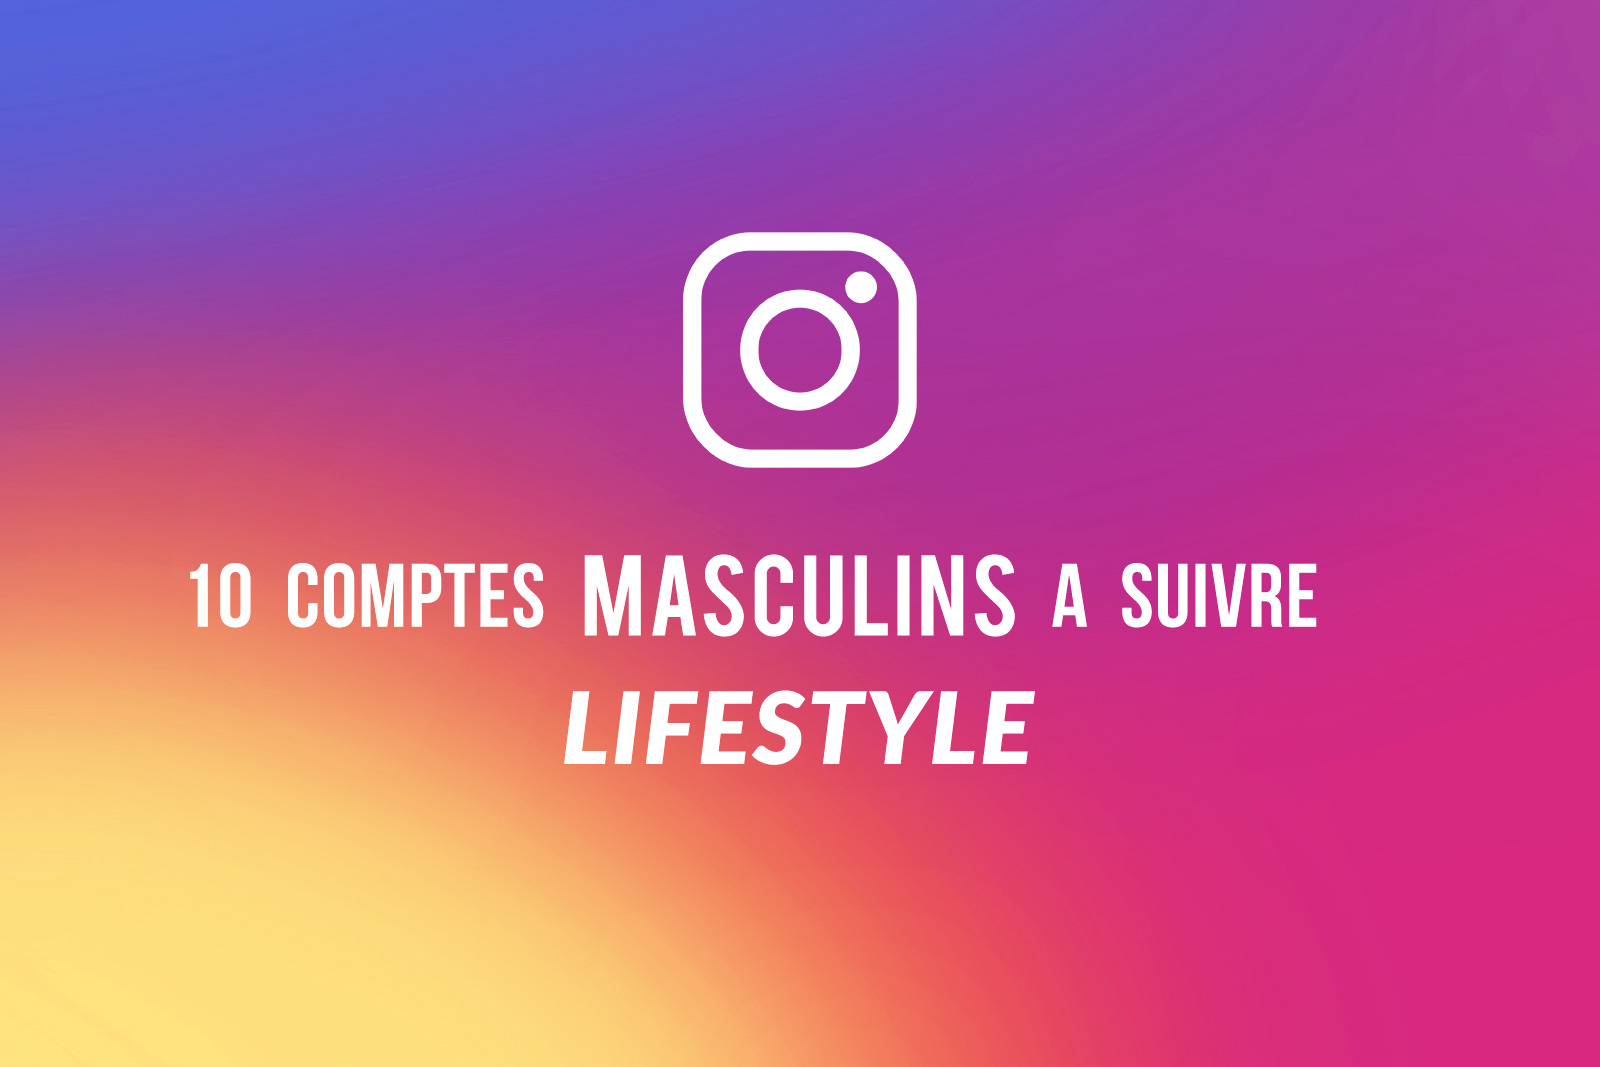 Instagram Lifestyle Masculin